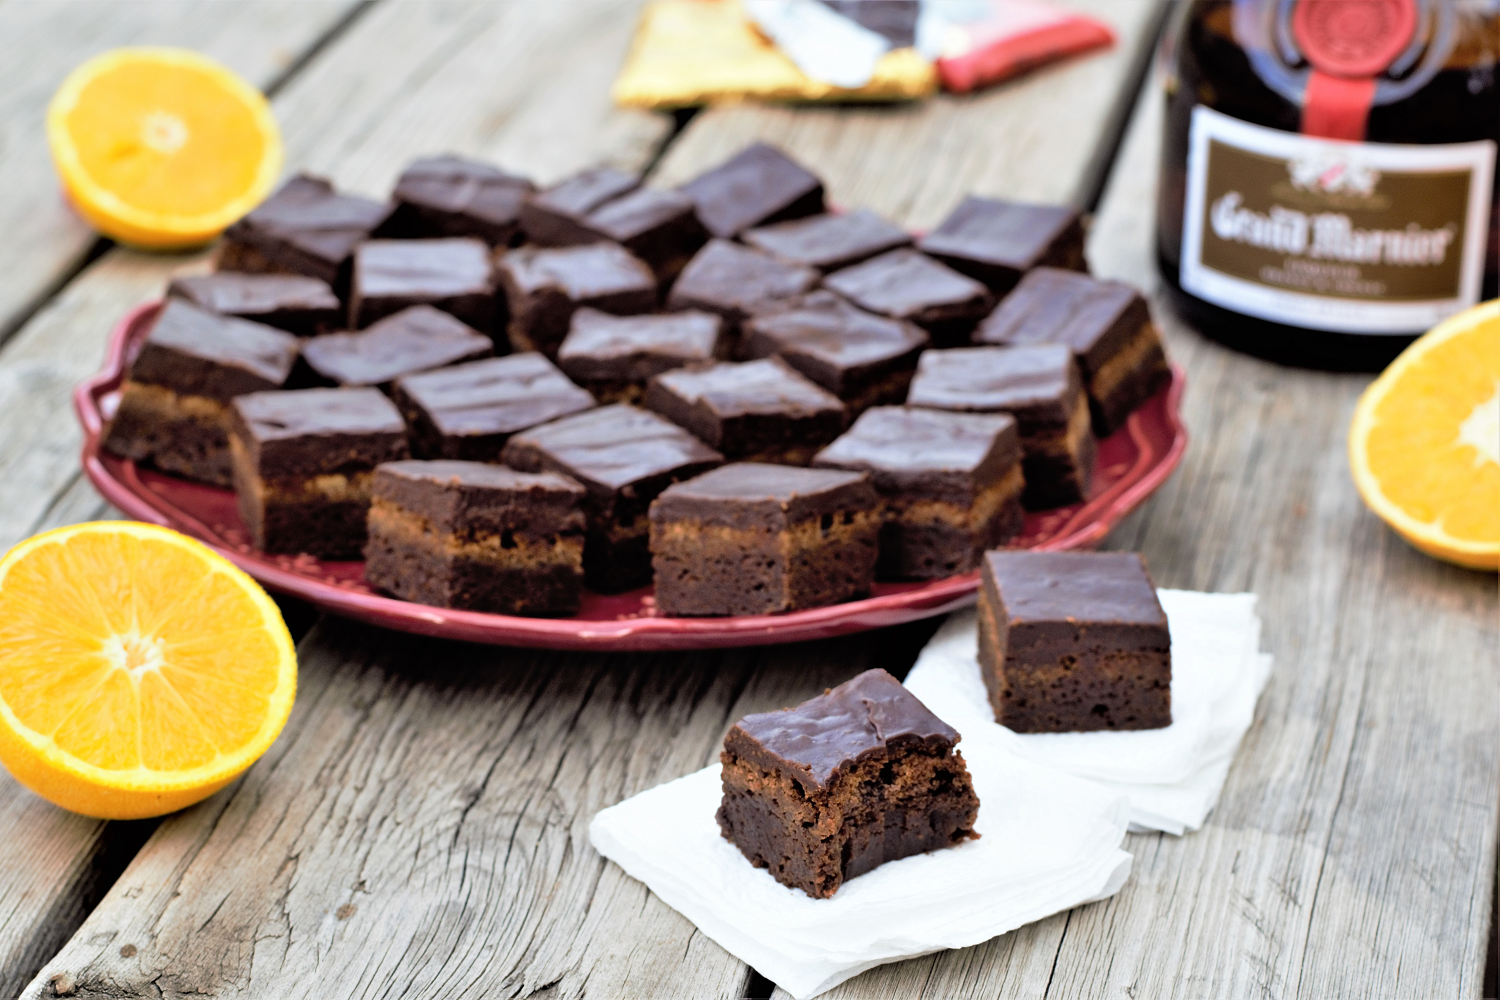 Dense, fudgy brownies loaded with orange zest and topped with rich orange liqueur ganache are pure, irresistible decadence.